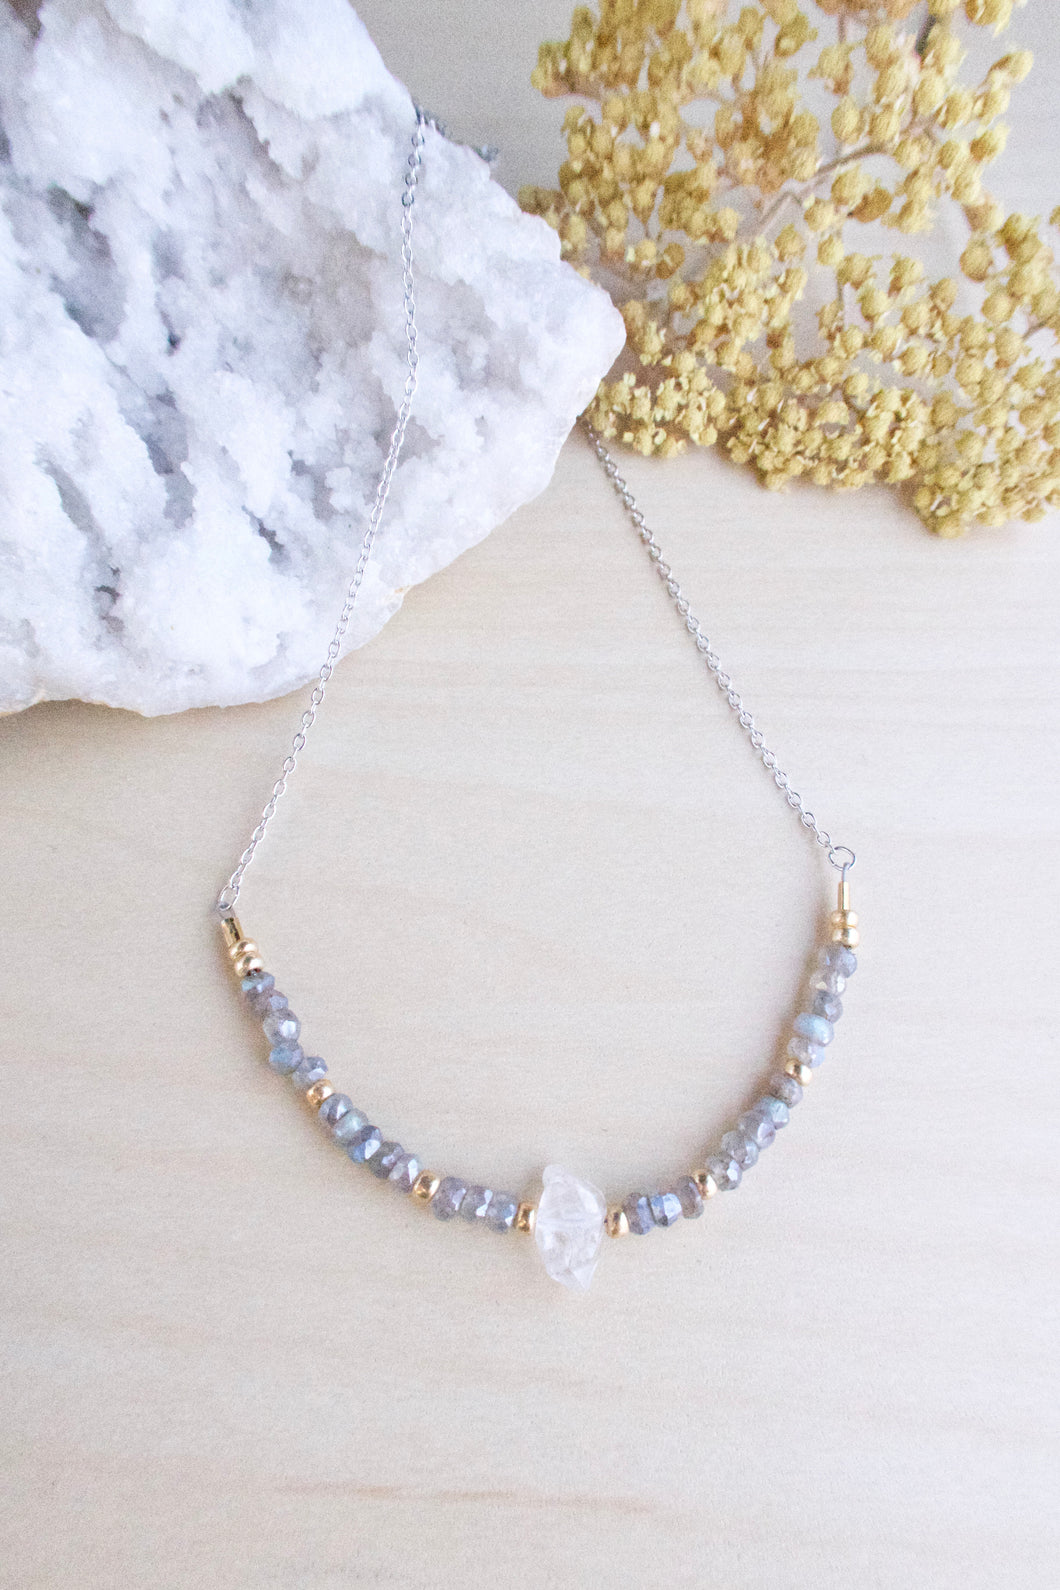 Labradorite and Herkimer Diamond Necklace